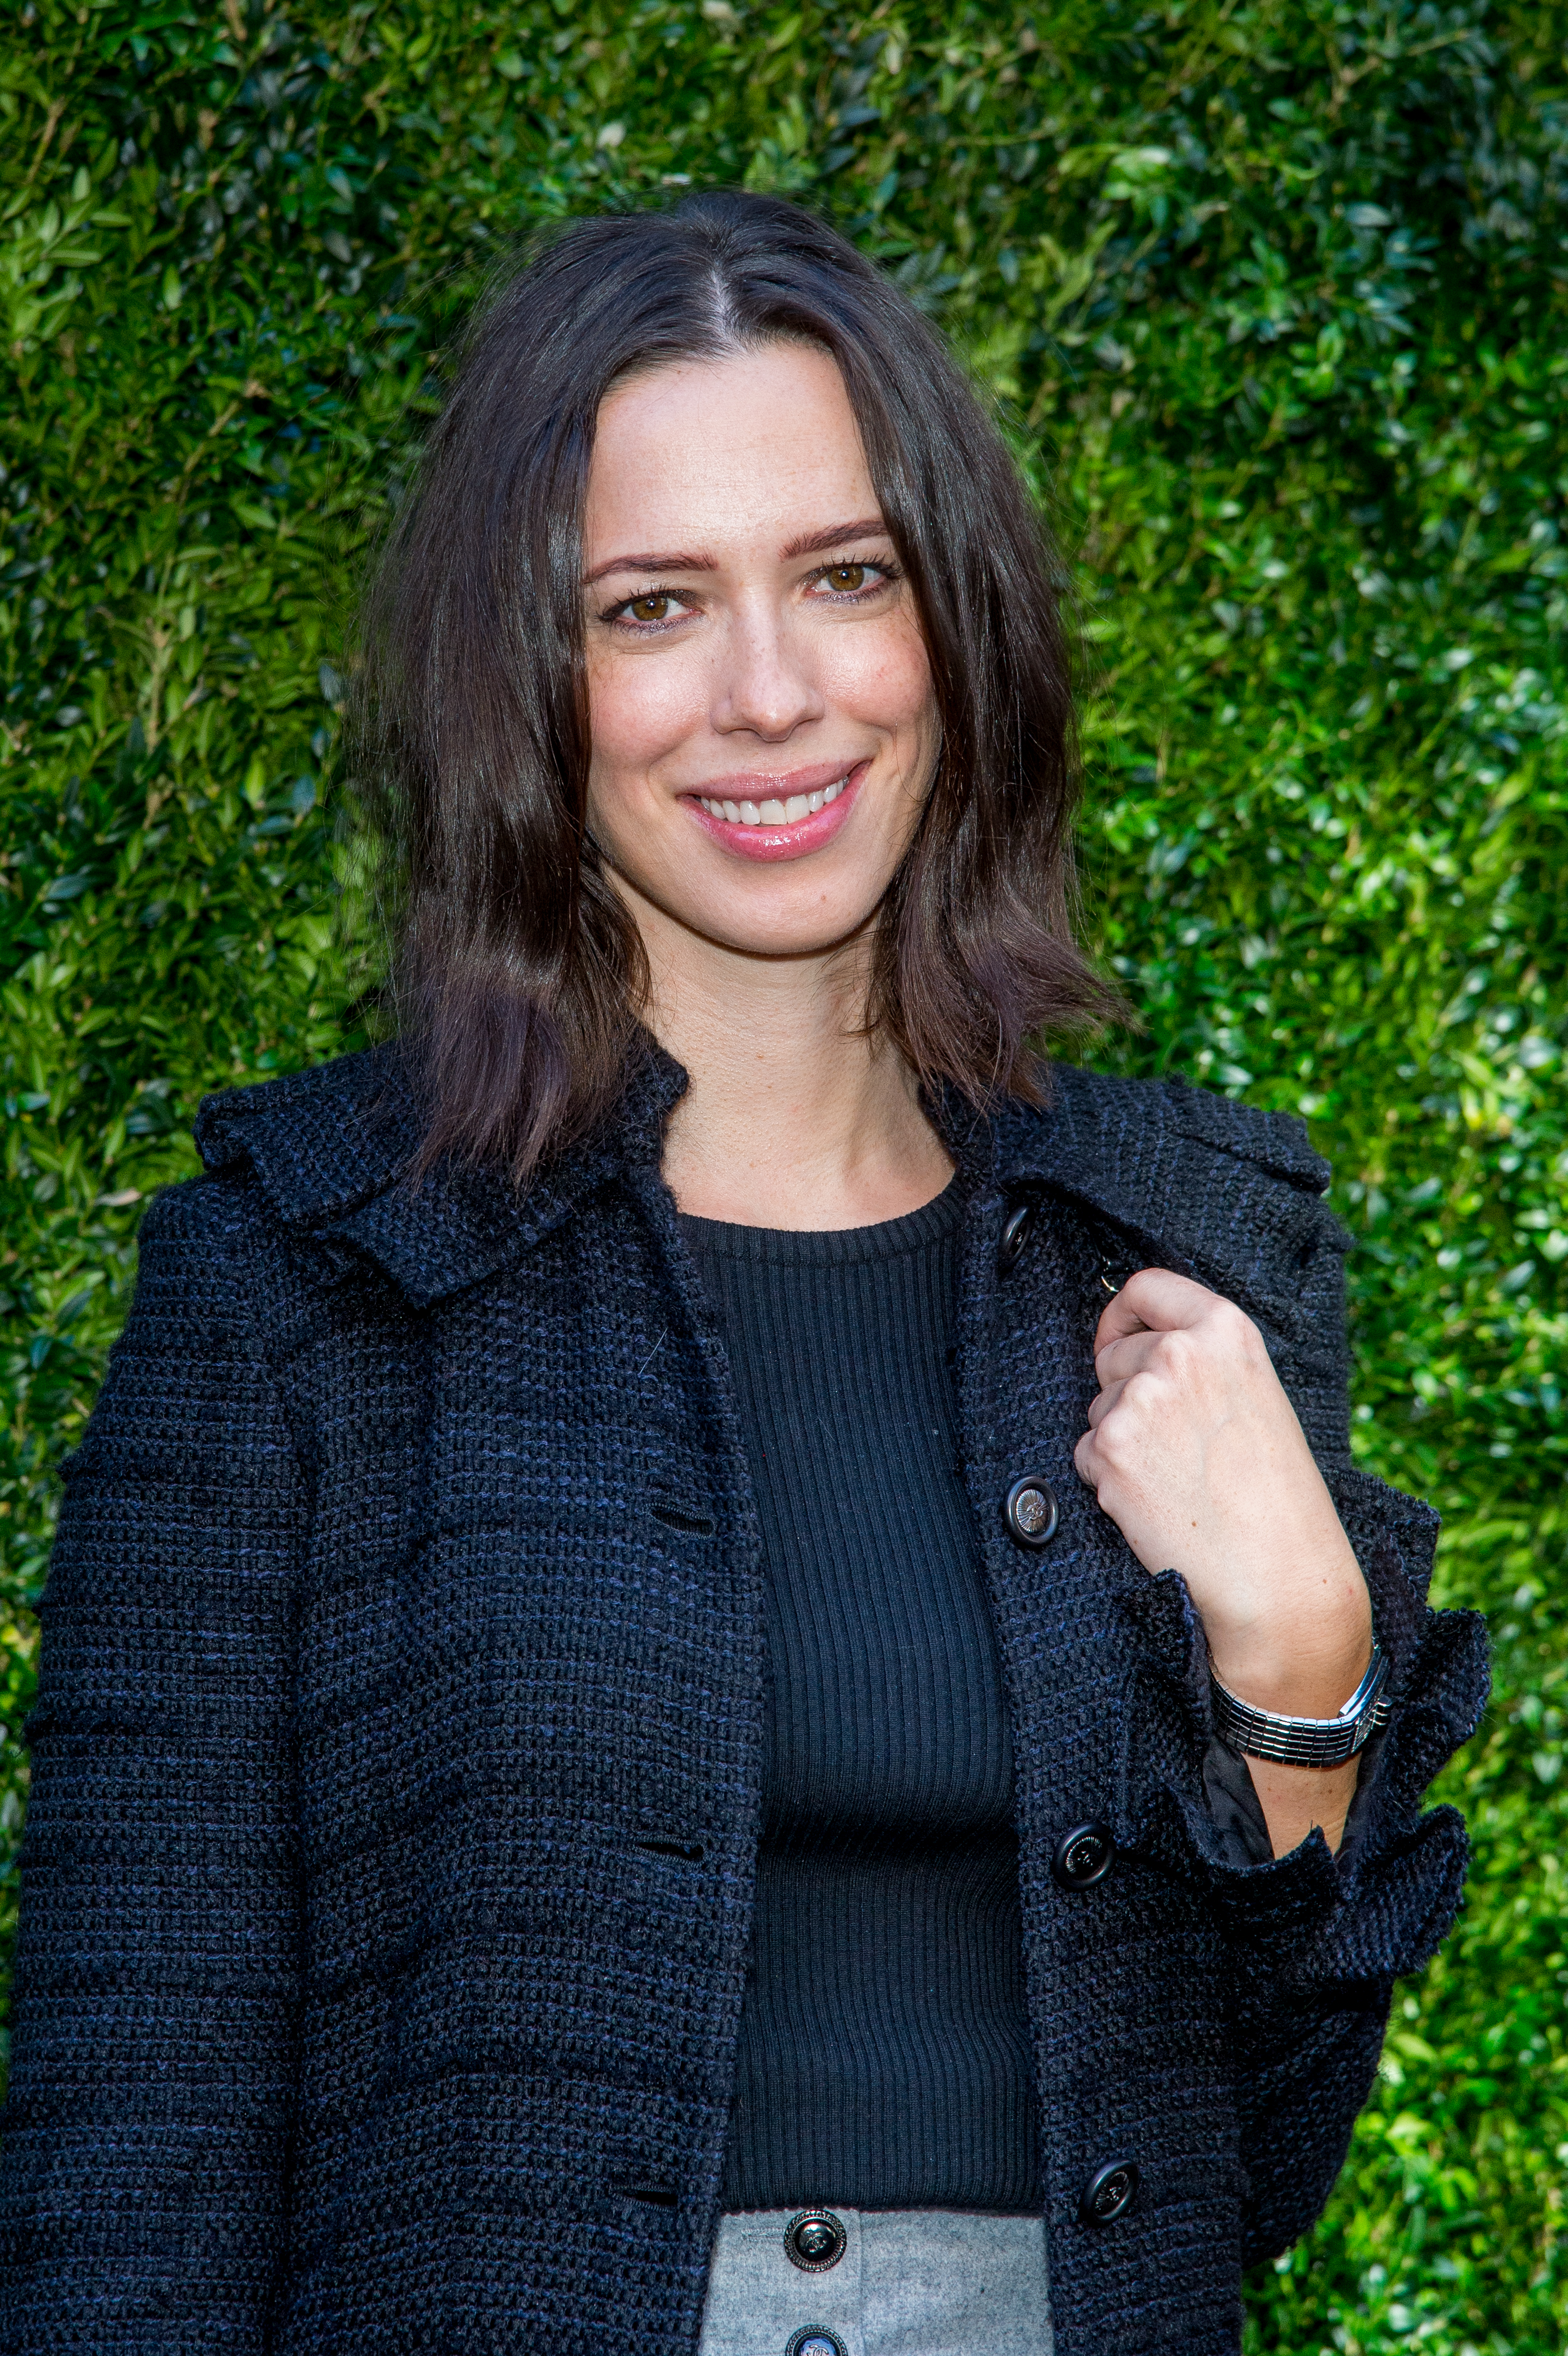 Rebecca Hall attends Through Her Lens: The Tribeca Chanel Women's Filmmaker Program Luncheon at Locanda Verde on October 17, 2017 in New York City. (Photo by Roy Rochlin/FilmMagic)